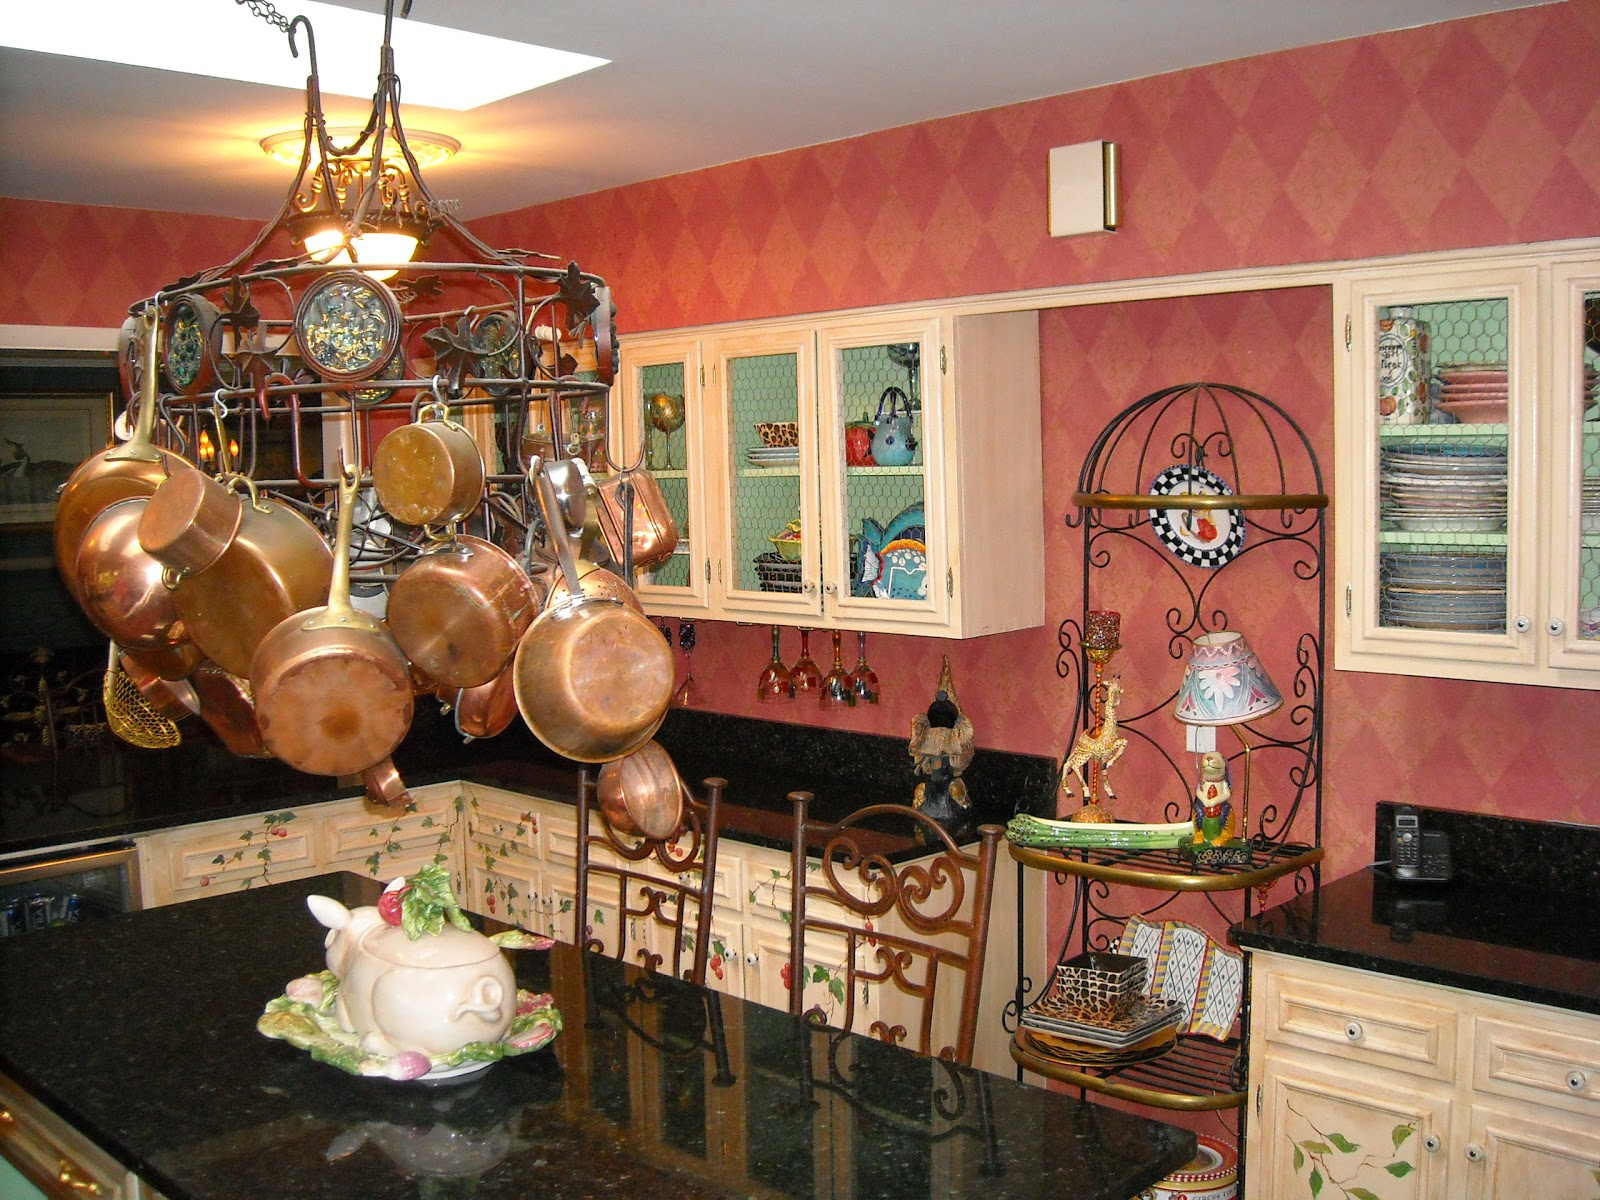 cabinets, I put beautiful Salmon colored Thibaut wallpaper on the